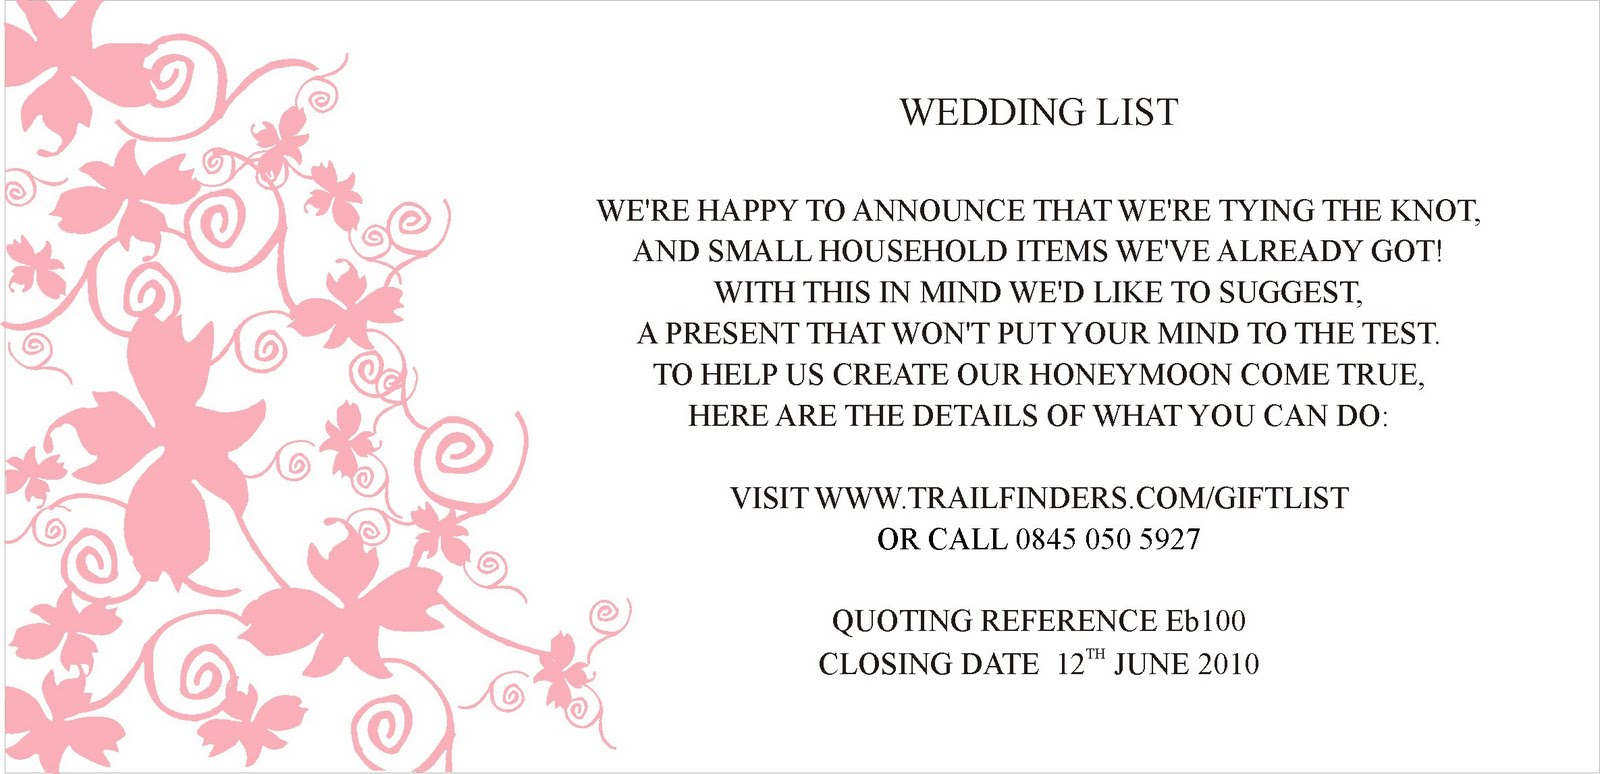 Message For Wedding Gift List : Inspiration for weddings, invitations and stationery: May 2010